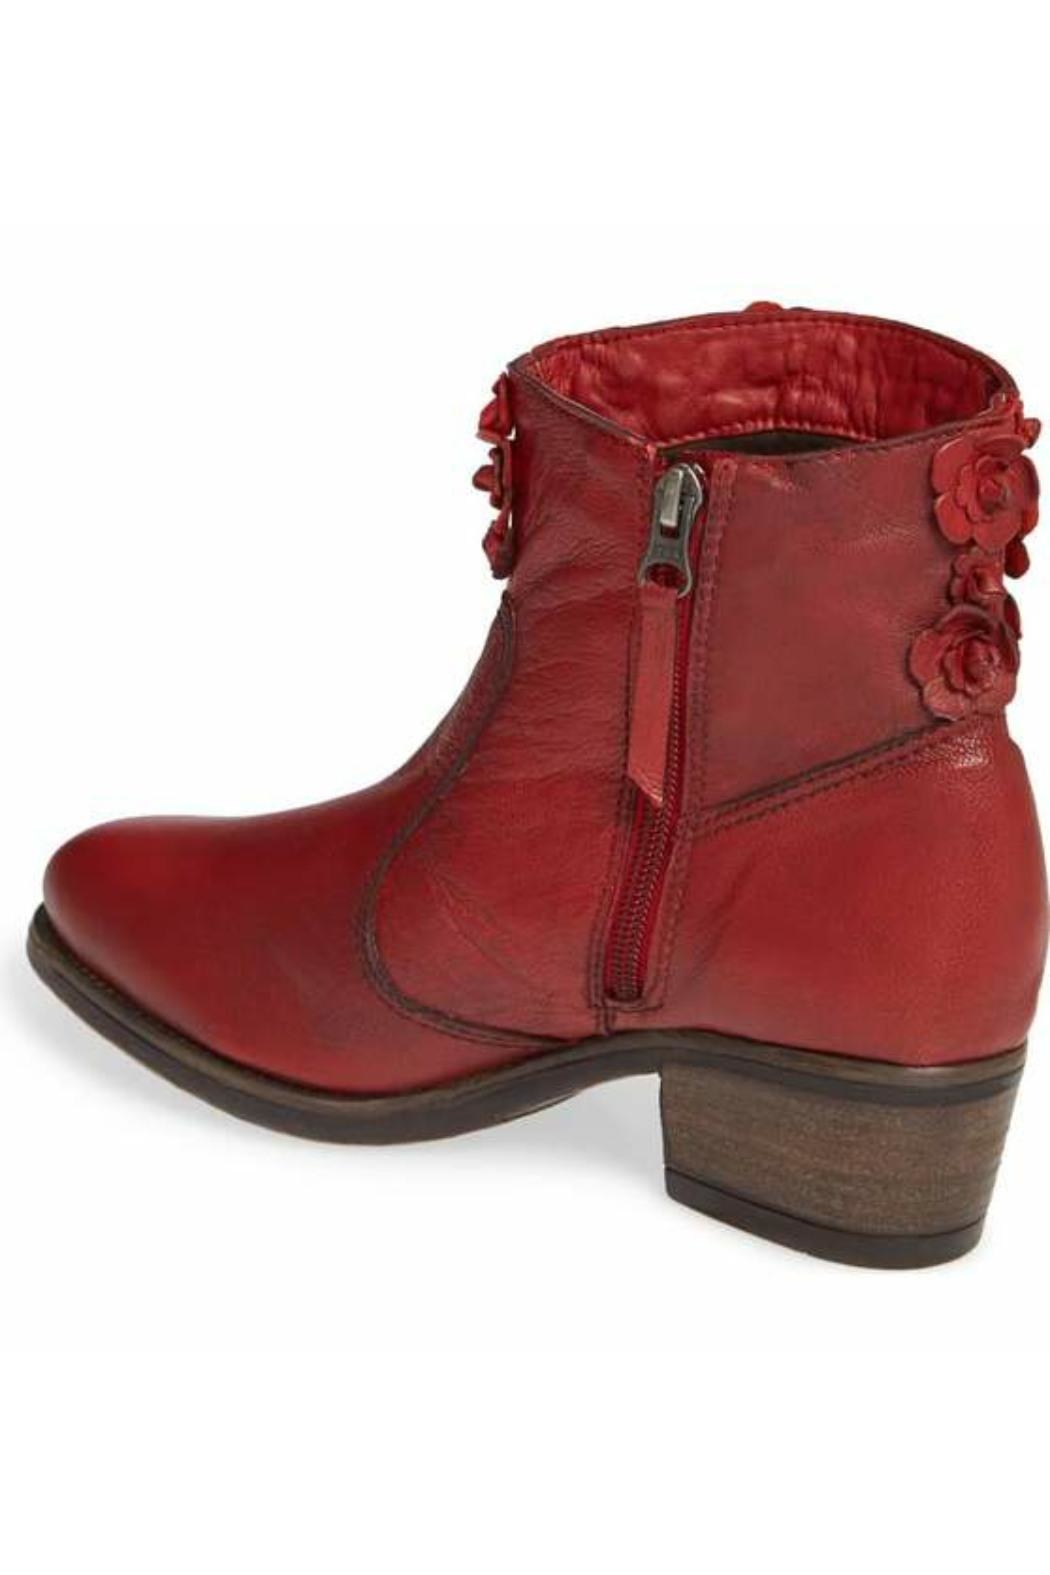 Sheridan Mia Saphire Red Bootie - Front Full Image